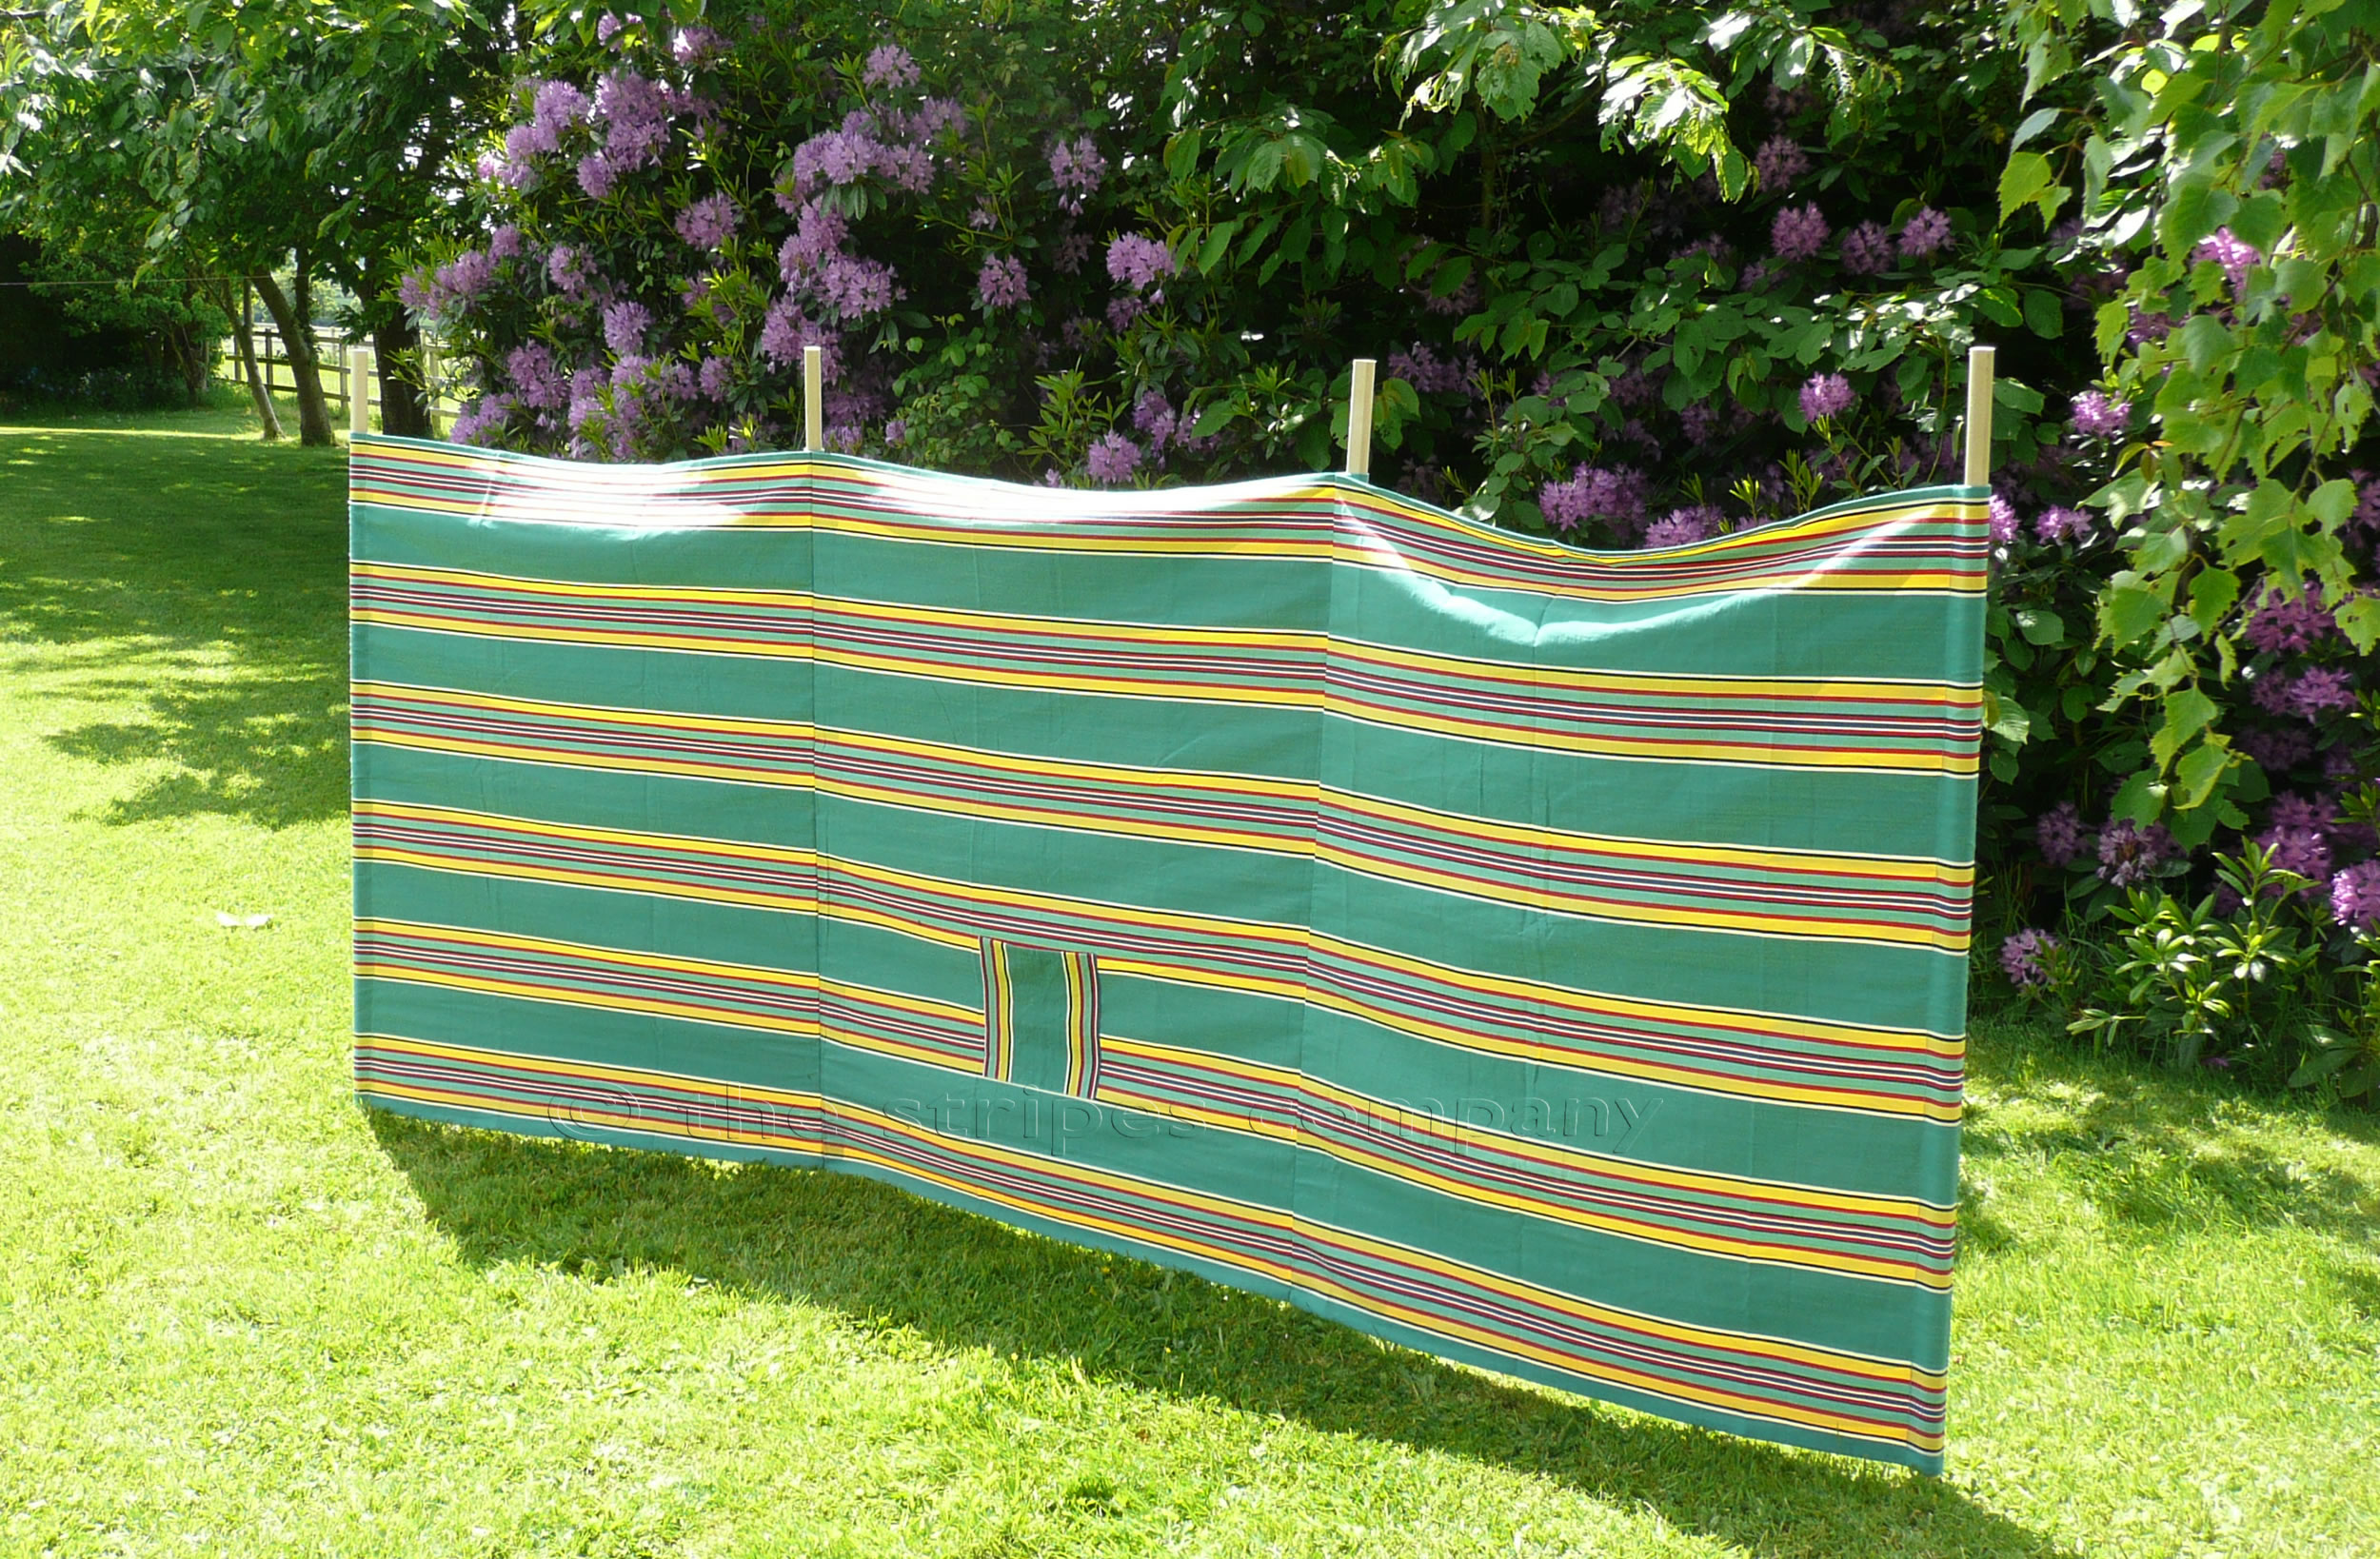 green, yellow, red, - Beach Windbreaks